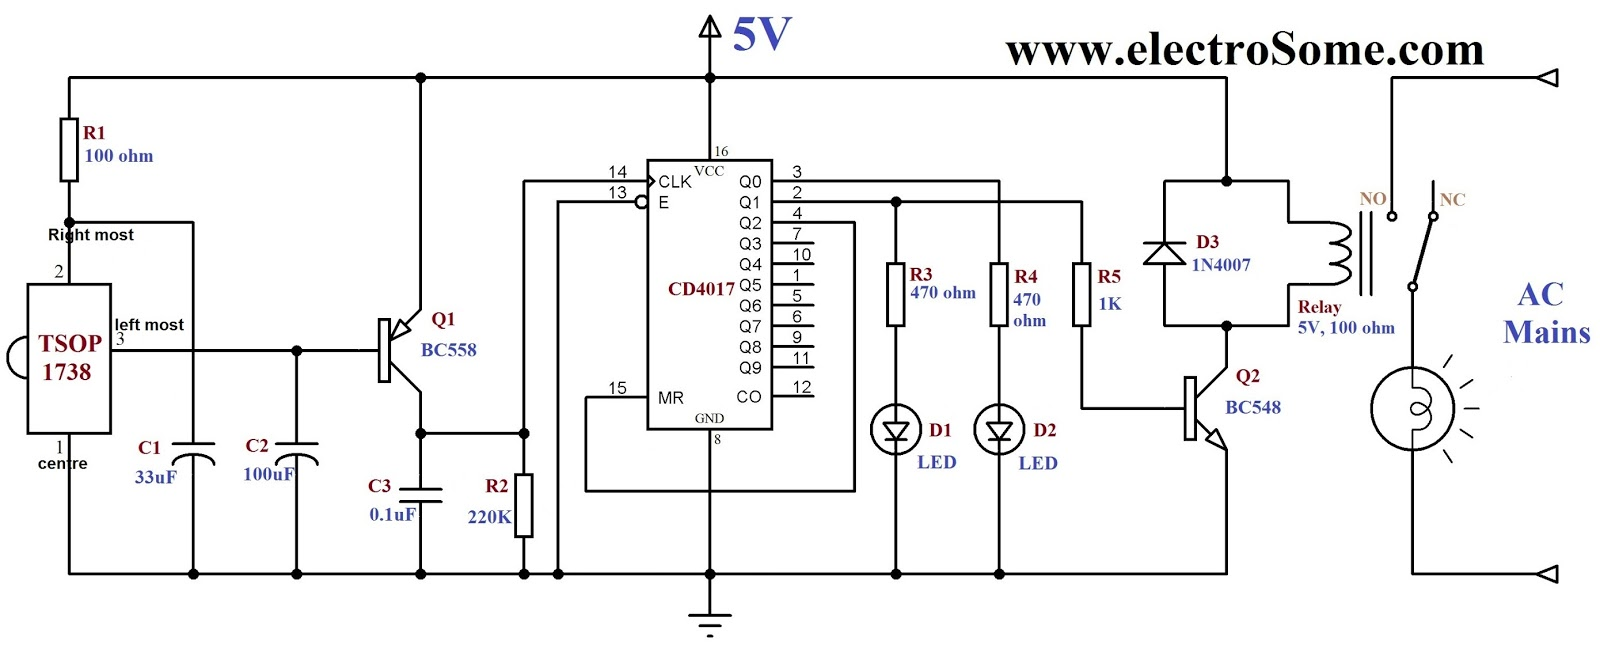 project theory wireless switch based on ir one click to switch on rh circuit project theory blogspot com